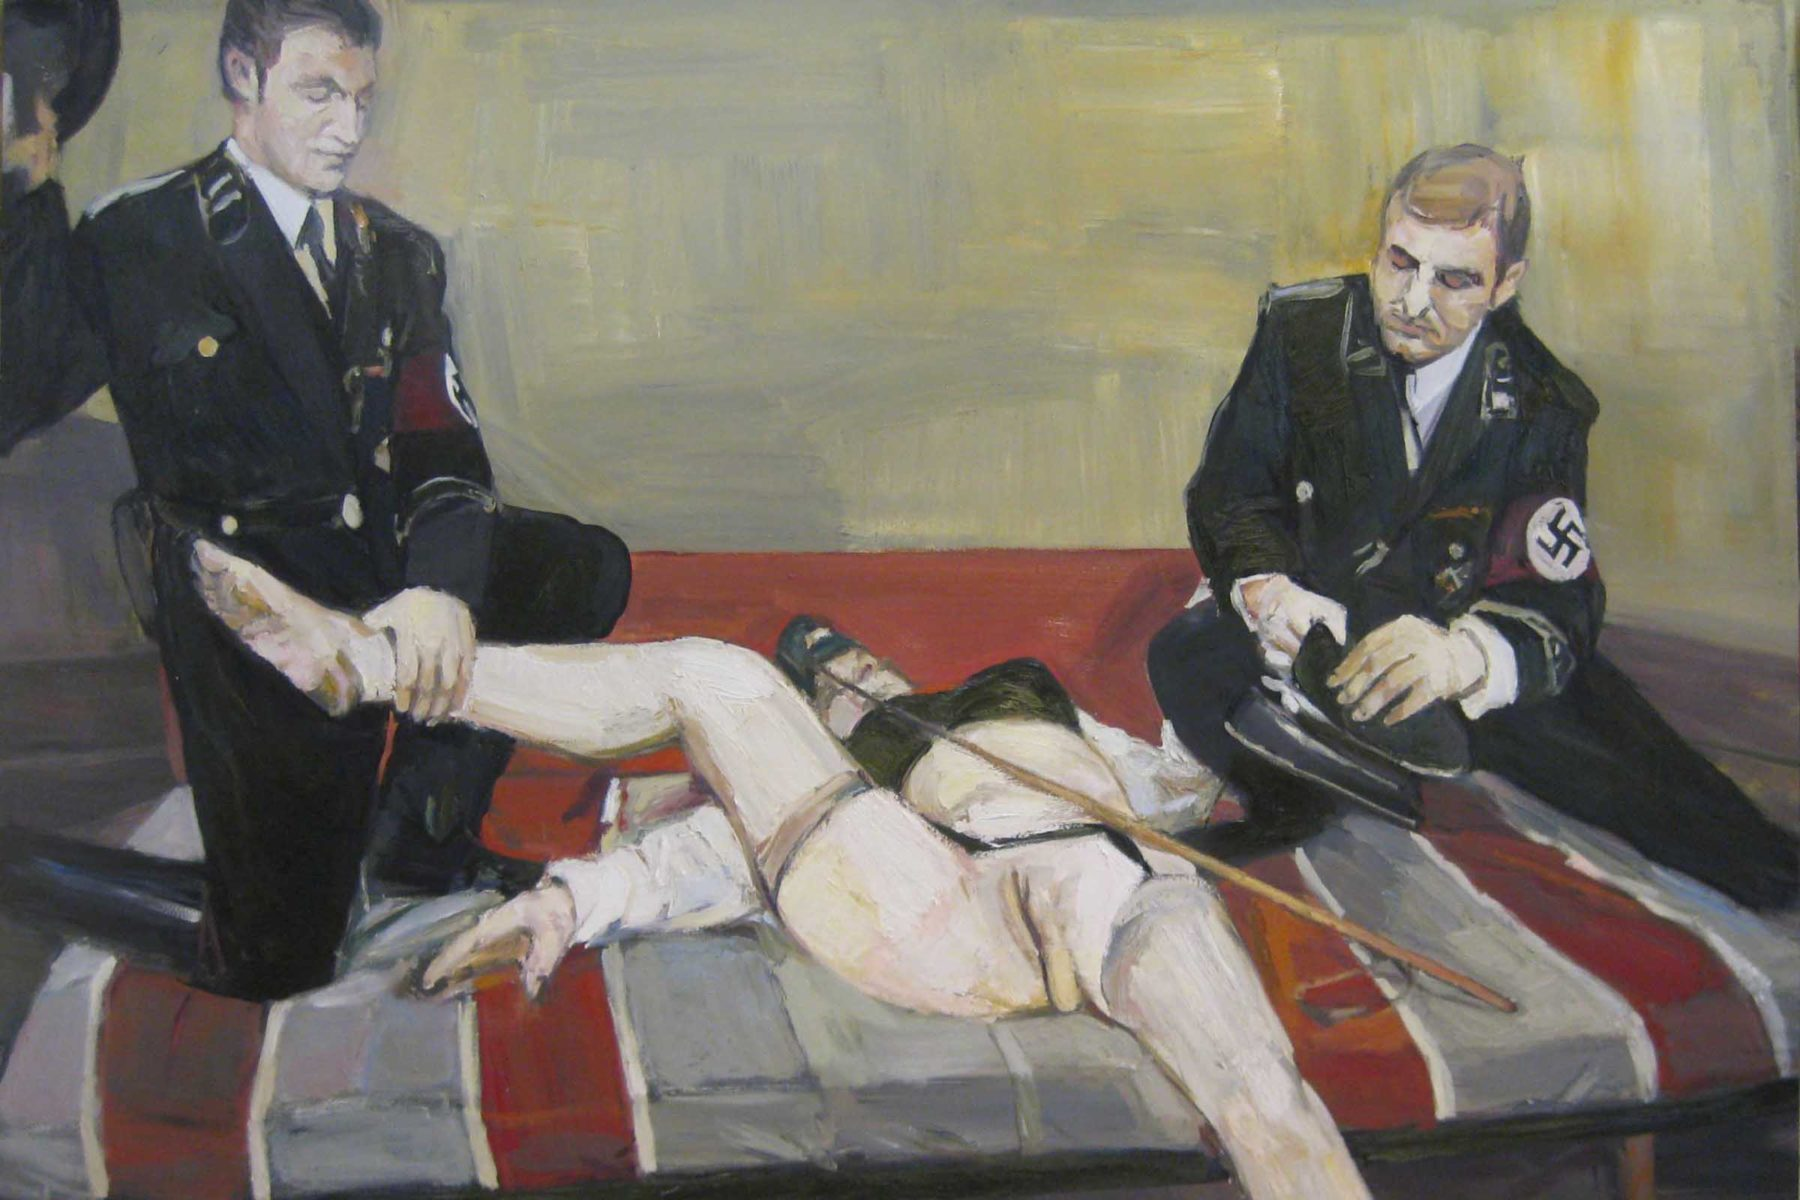 Aleksander Veliscek, Brownie Queen, 2011, oil on canvas, 200 x 160 cm